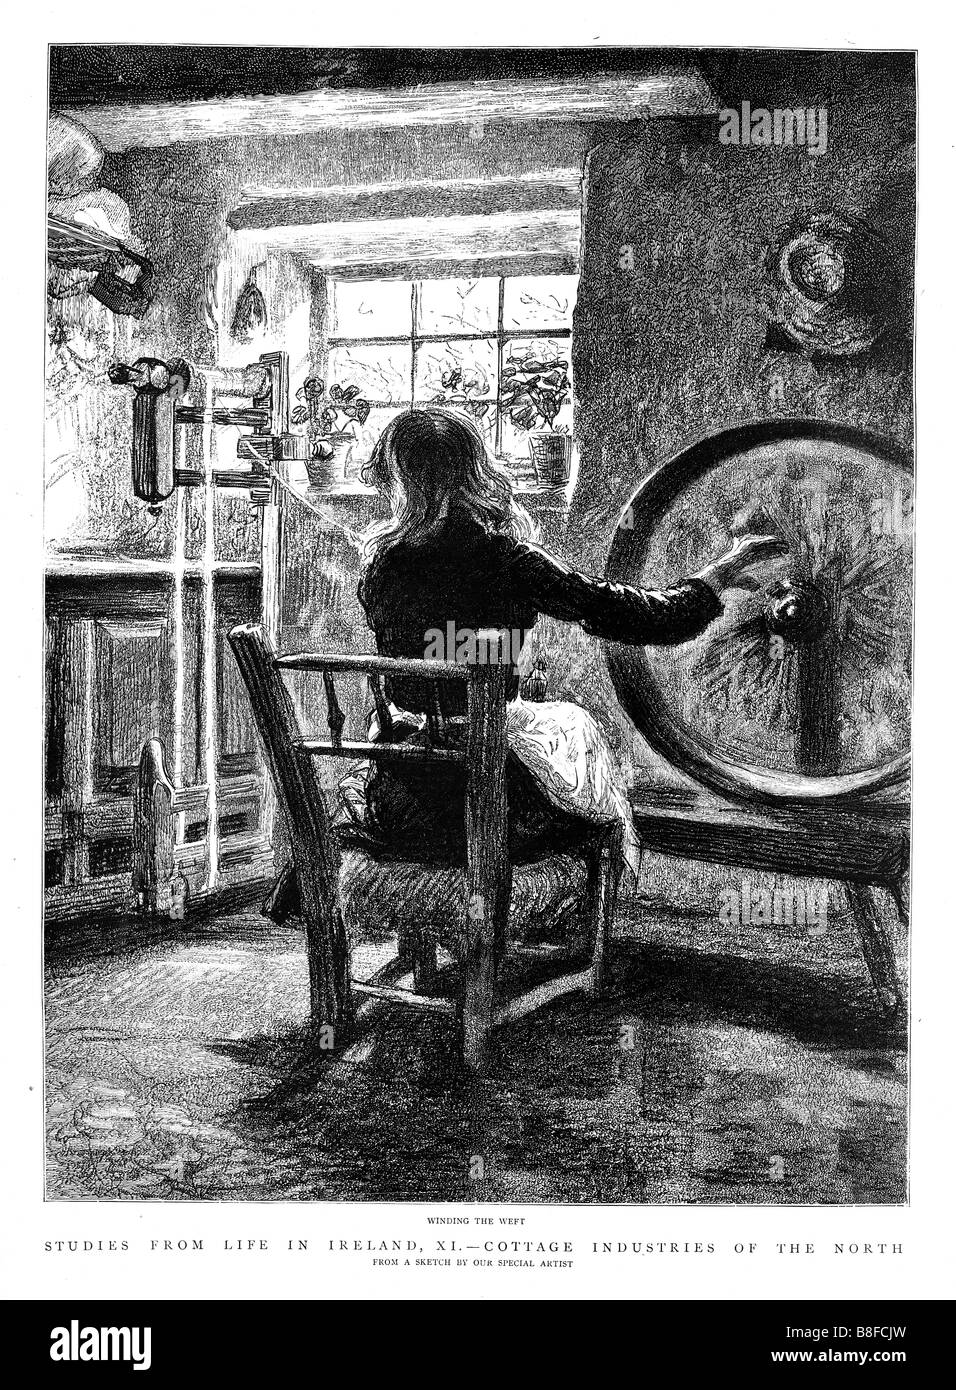 Irish Weaving 1888 engraving of a cottage industry in the North of Ireland Winding the Weft - Stock Image